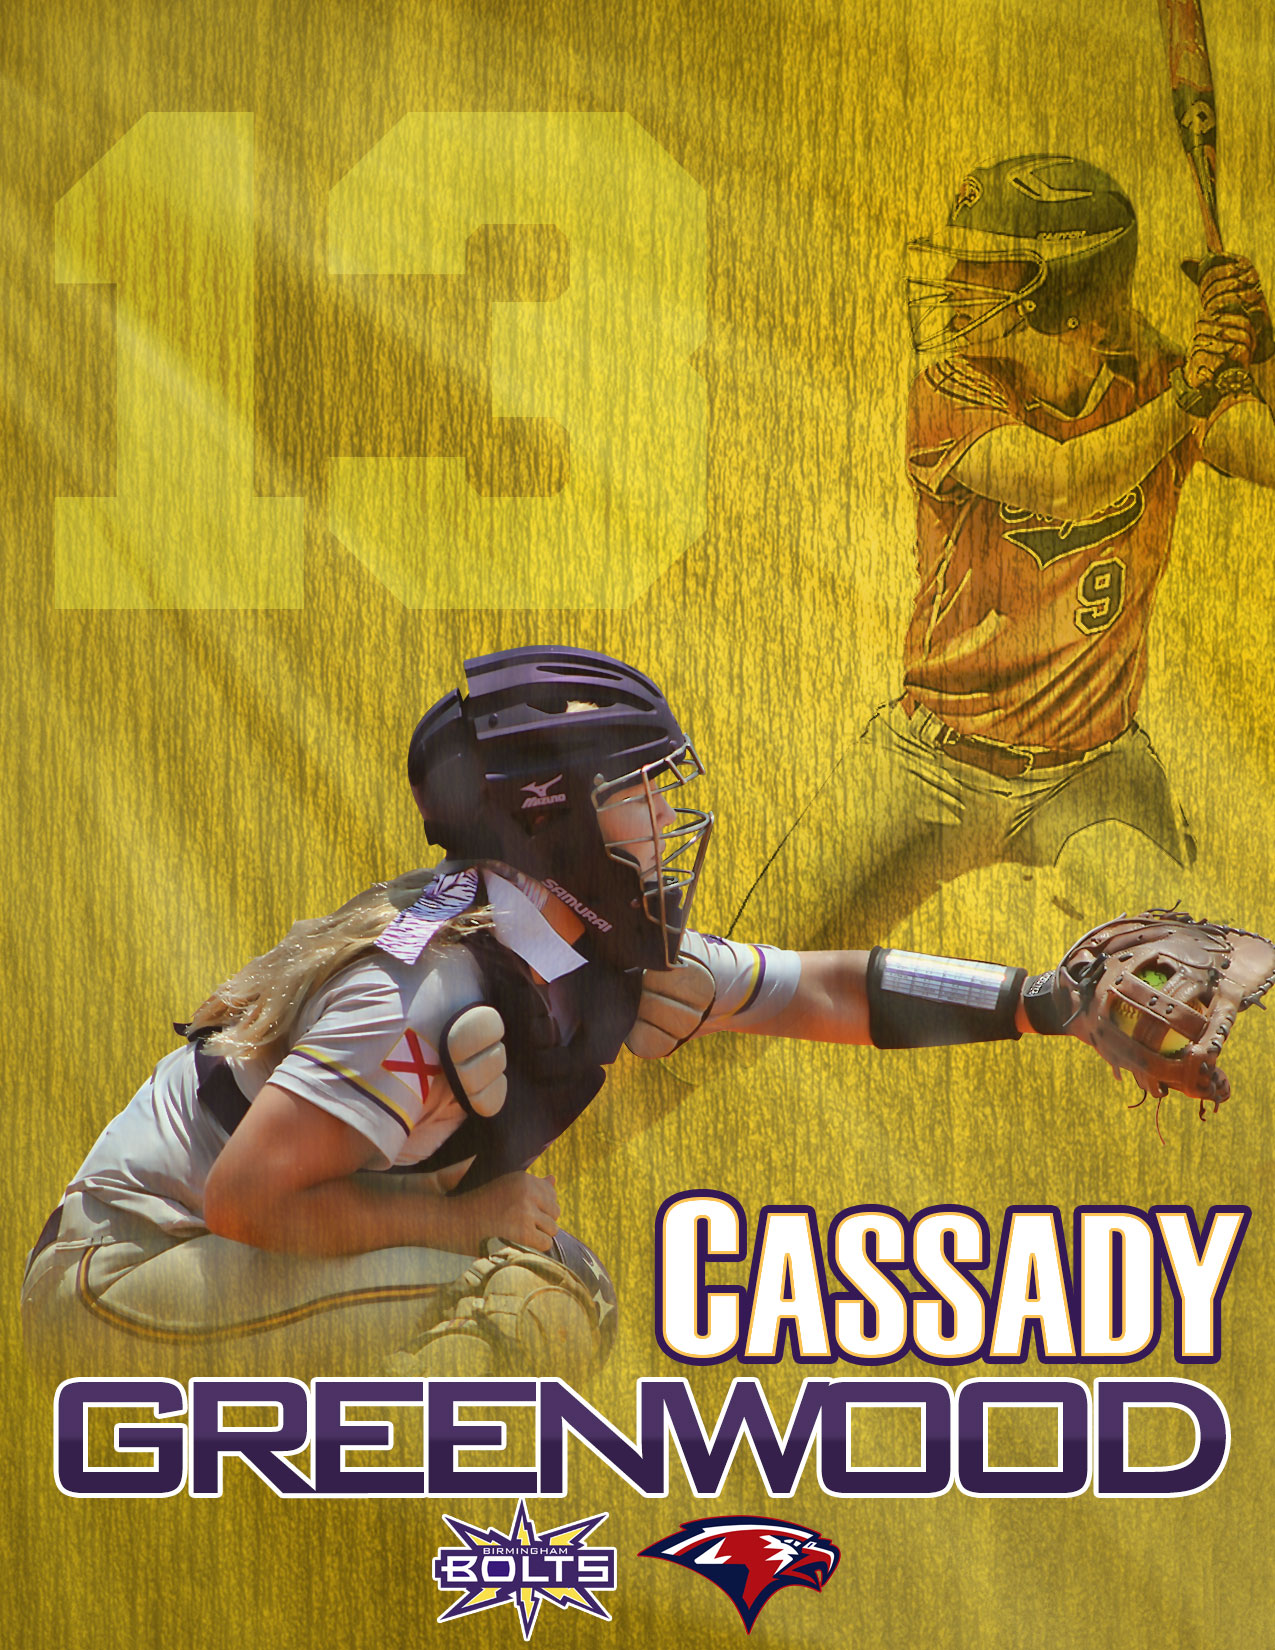 Custom Softball Poster  - Cassady